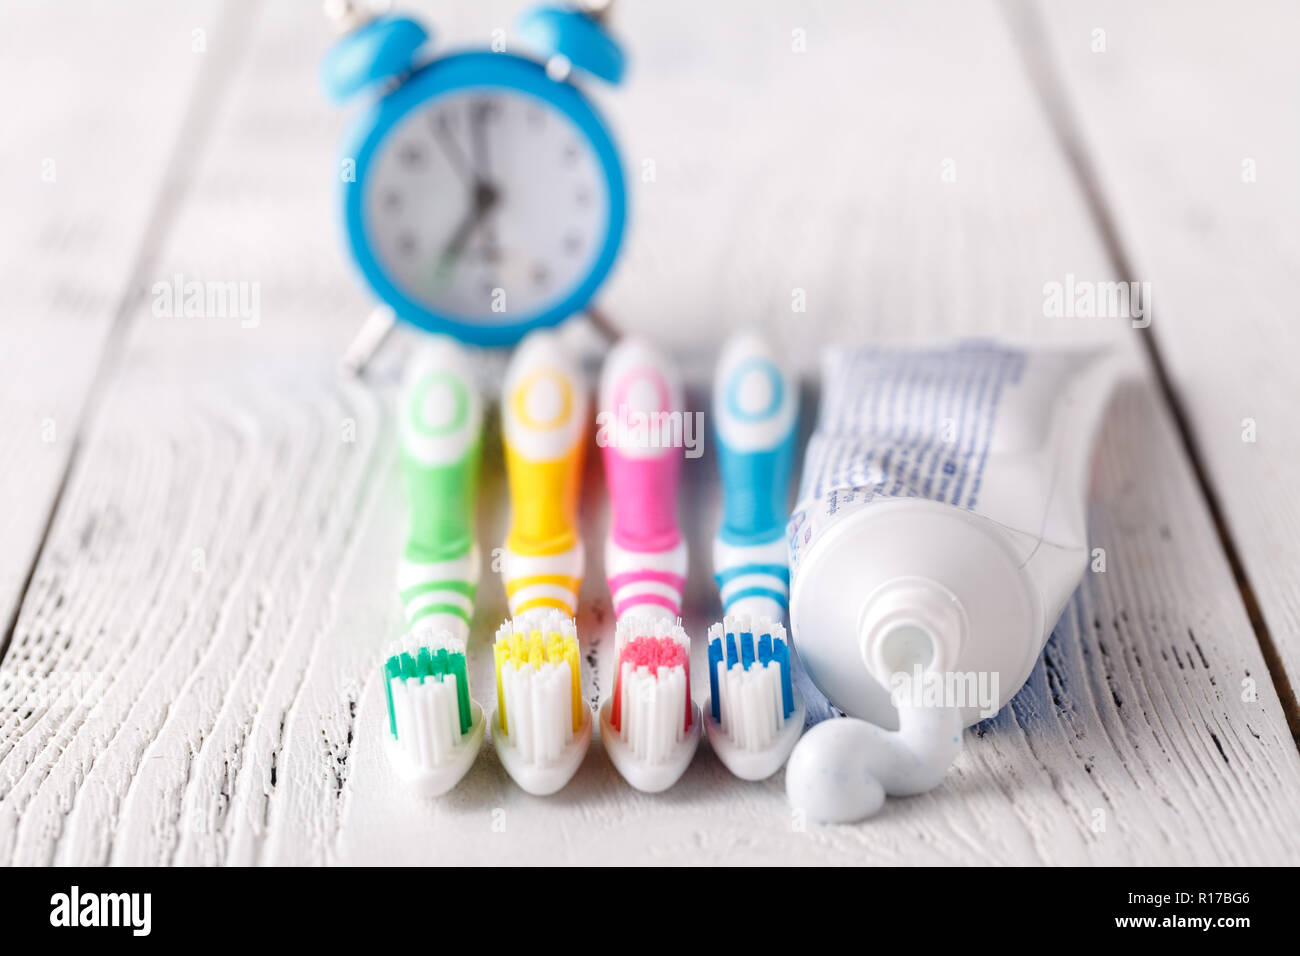 Close-up on toothpaste and toothbrush - Stock Image